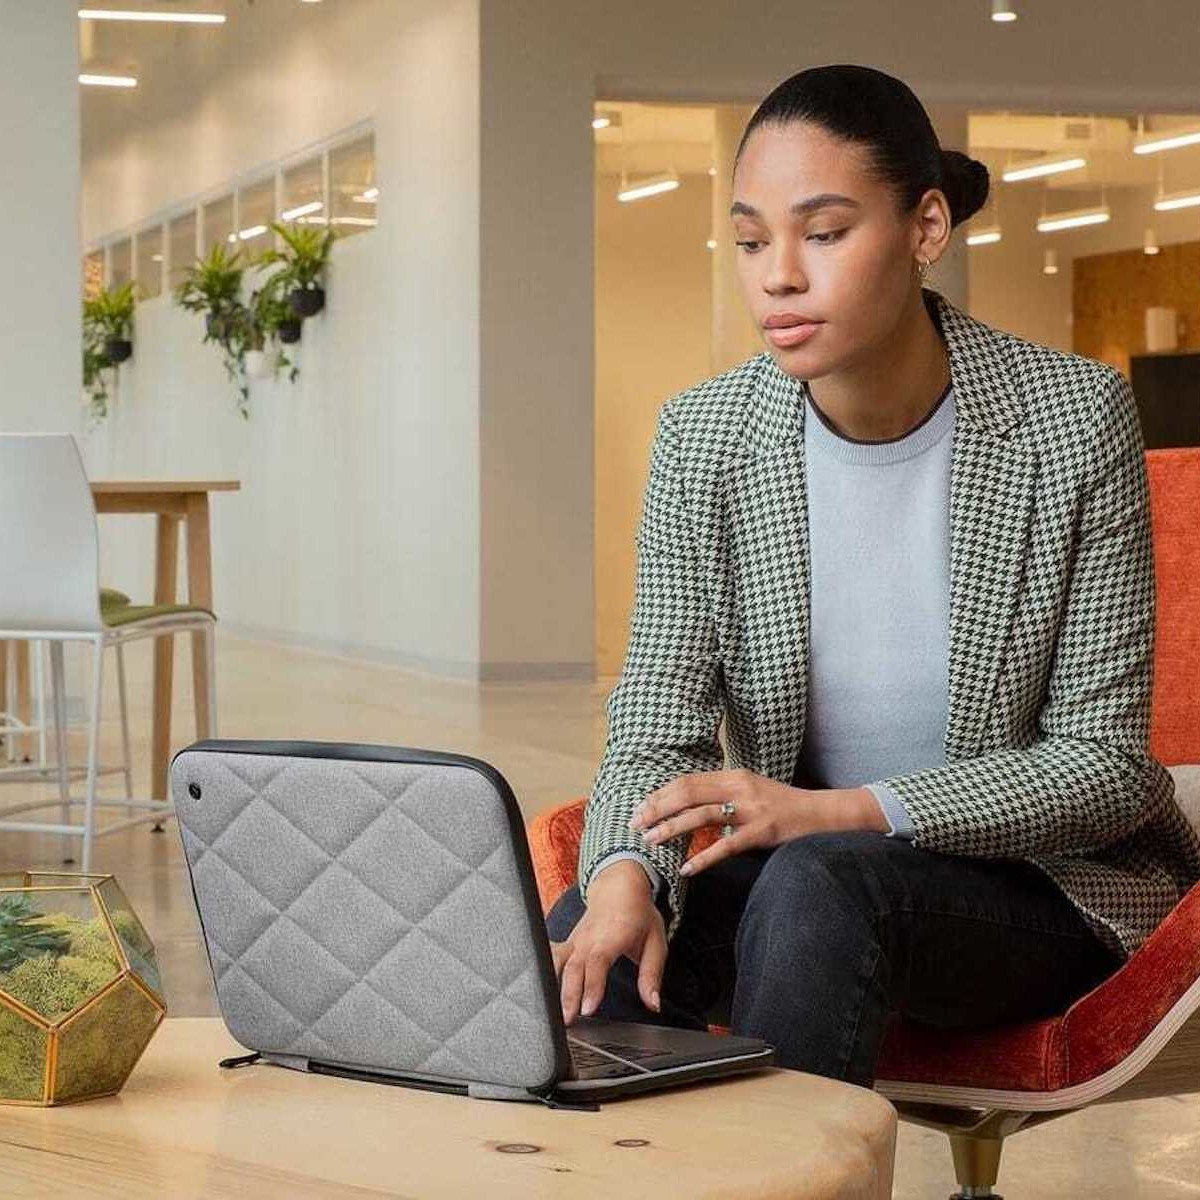 10 of the best MacBook Pro cases and covers thumbnail